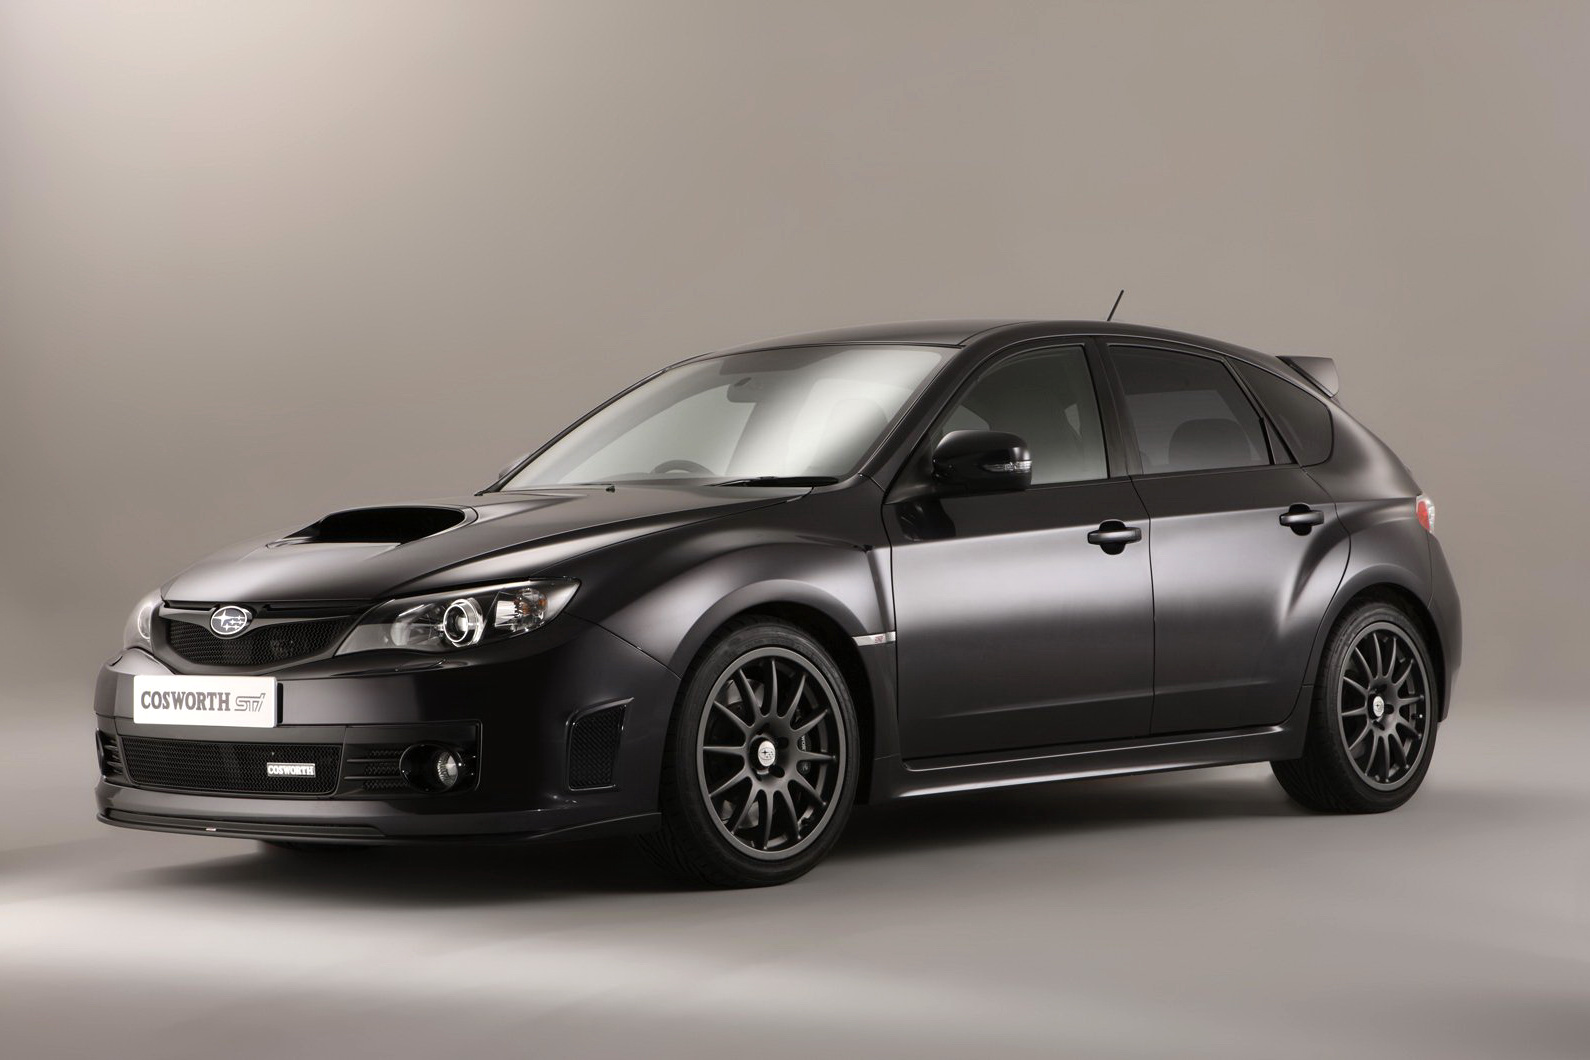 Subaru Cosworth Impreza STI CS400 Wallpaper << Otomotif car